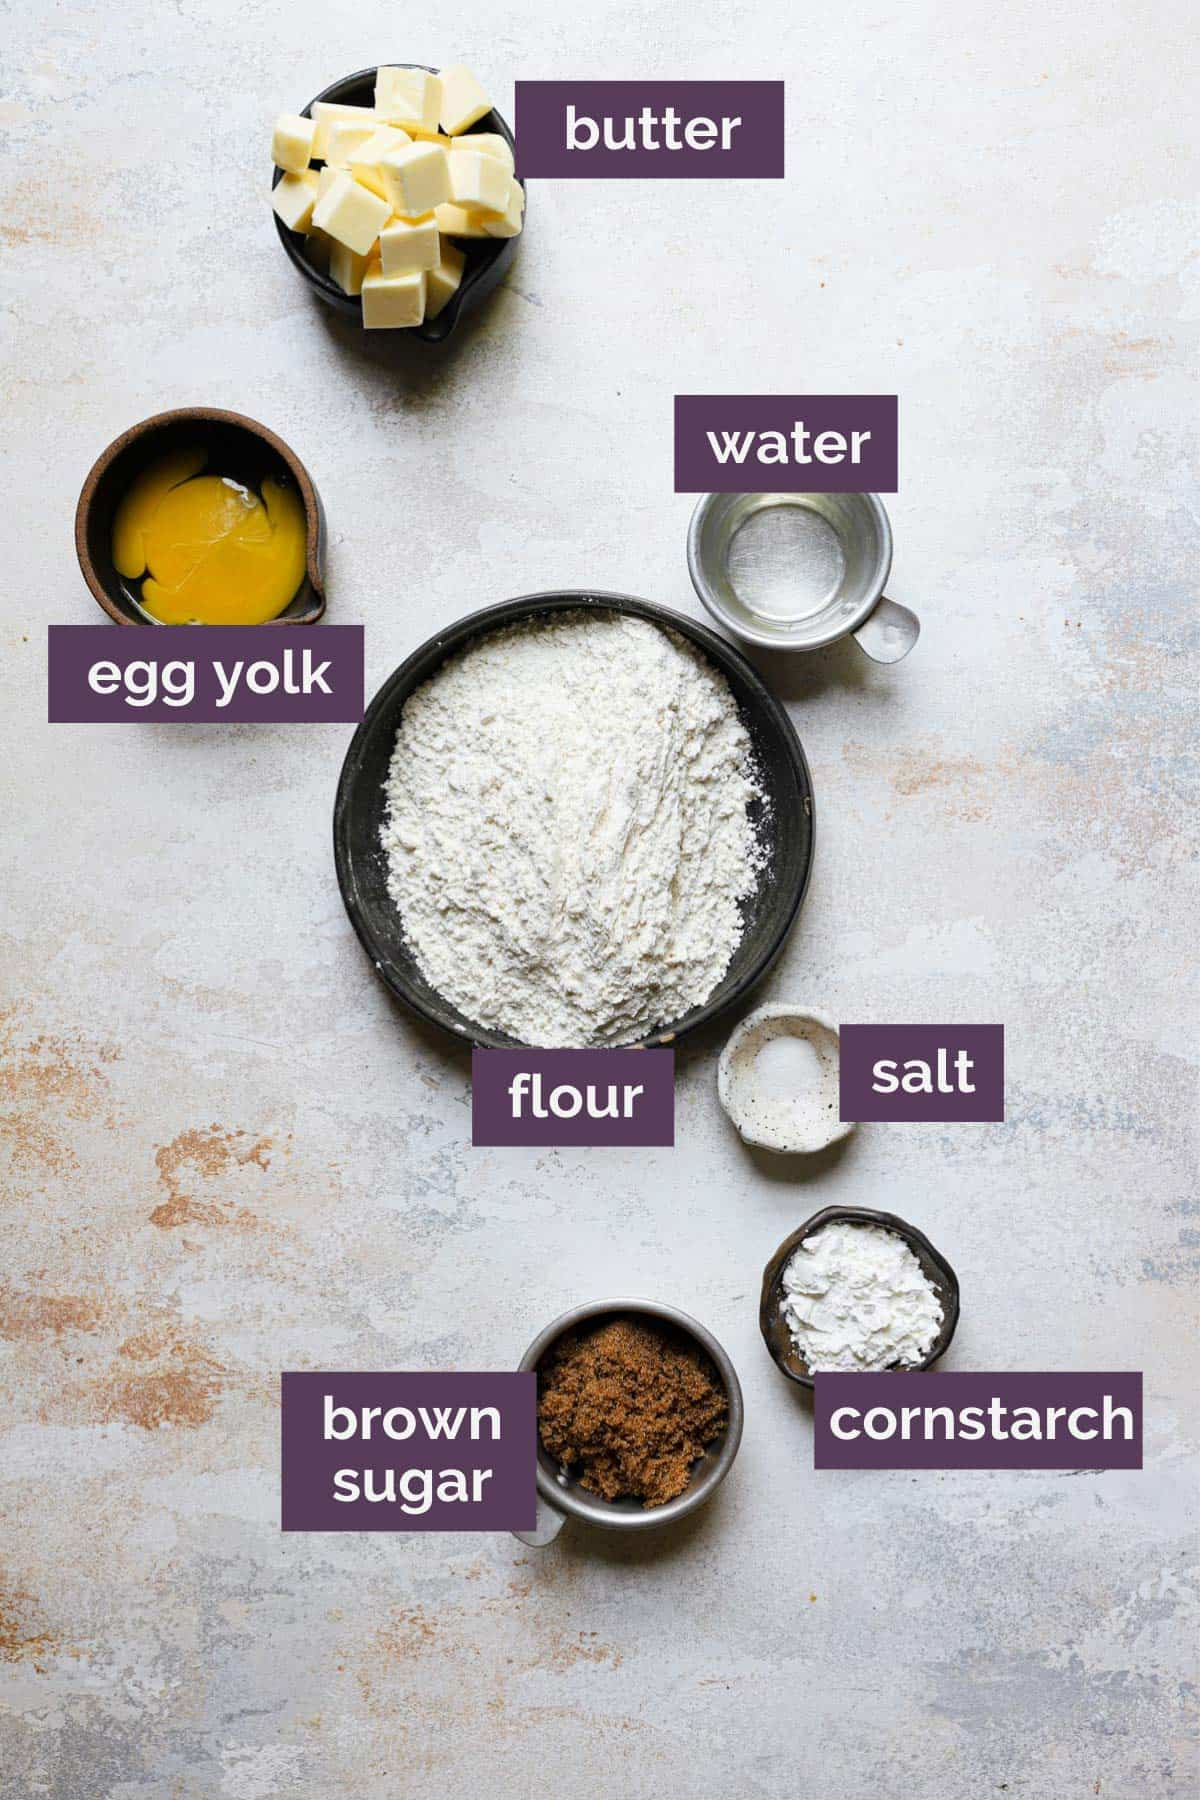 The ingredients for the shortbread crust in bowls with purple labels naming each ingredient.